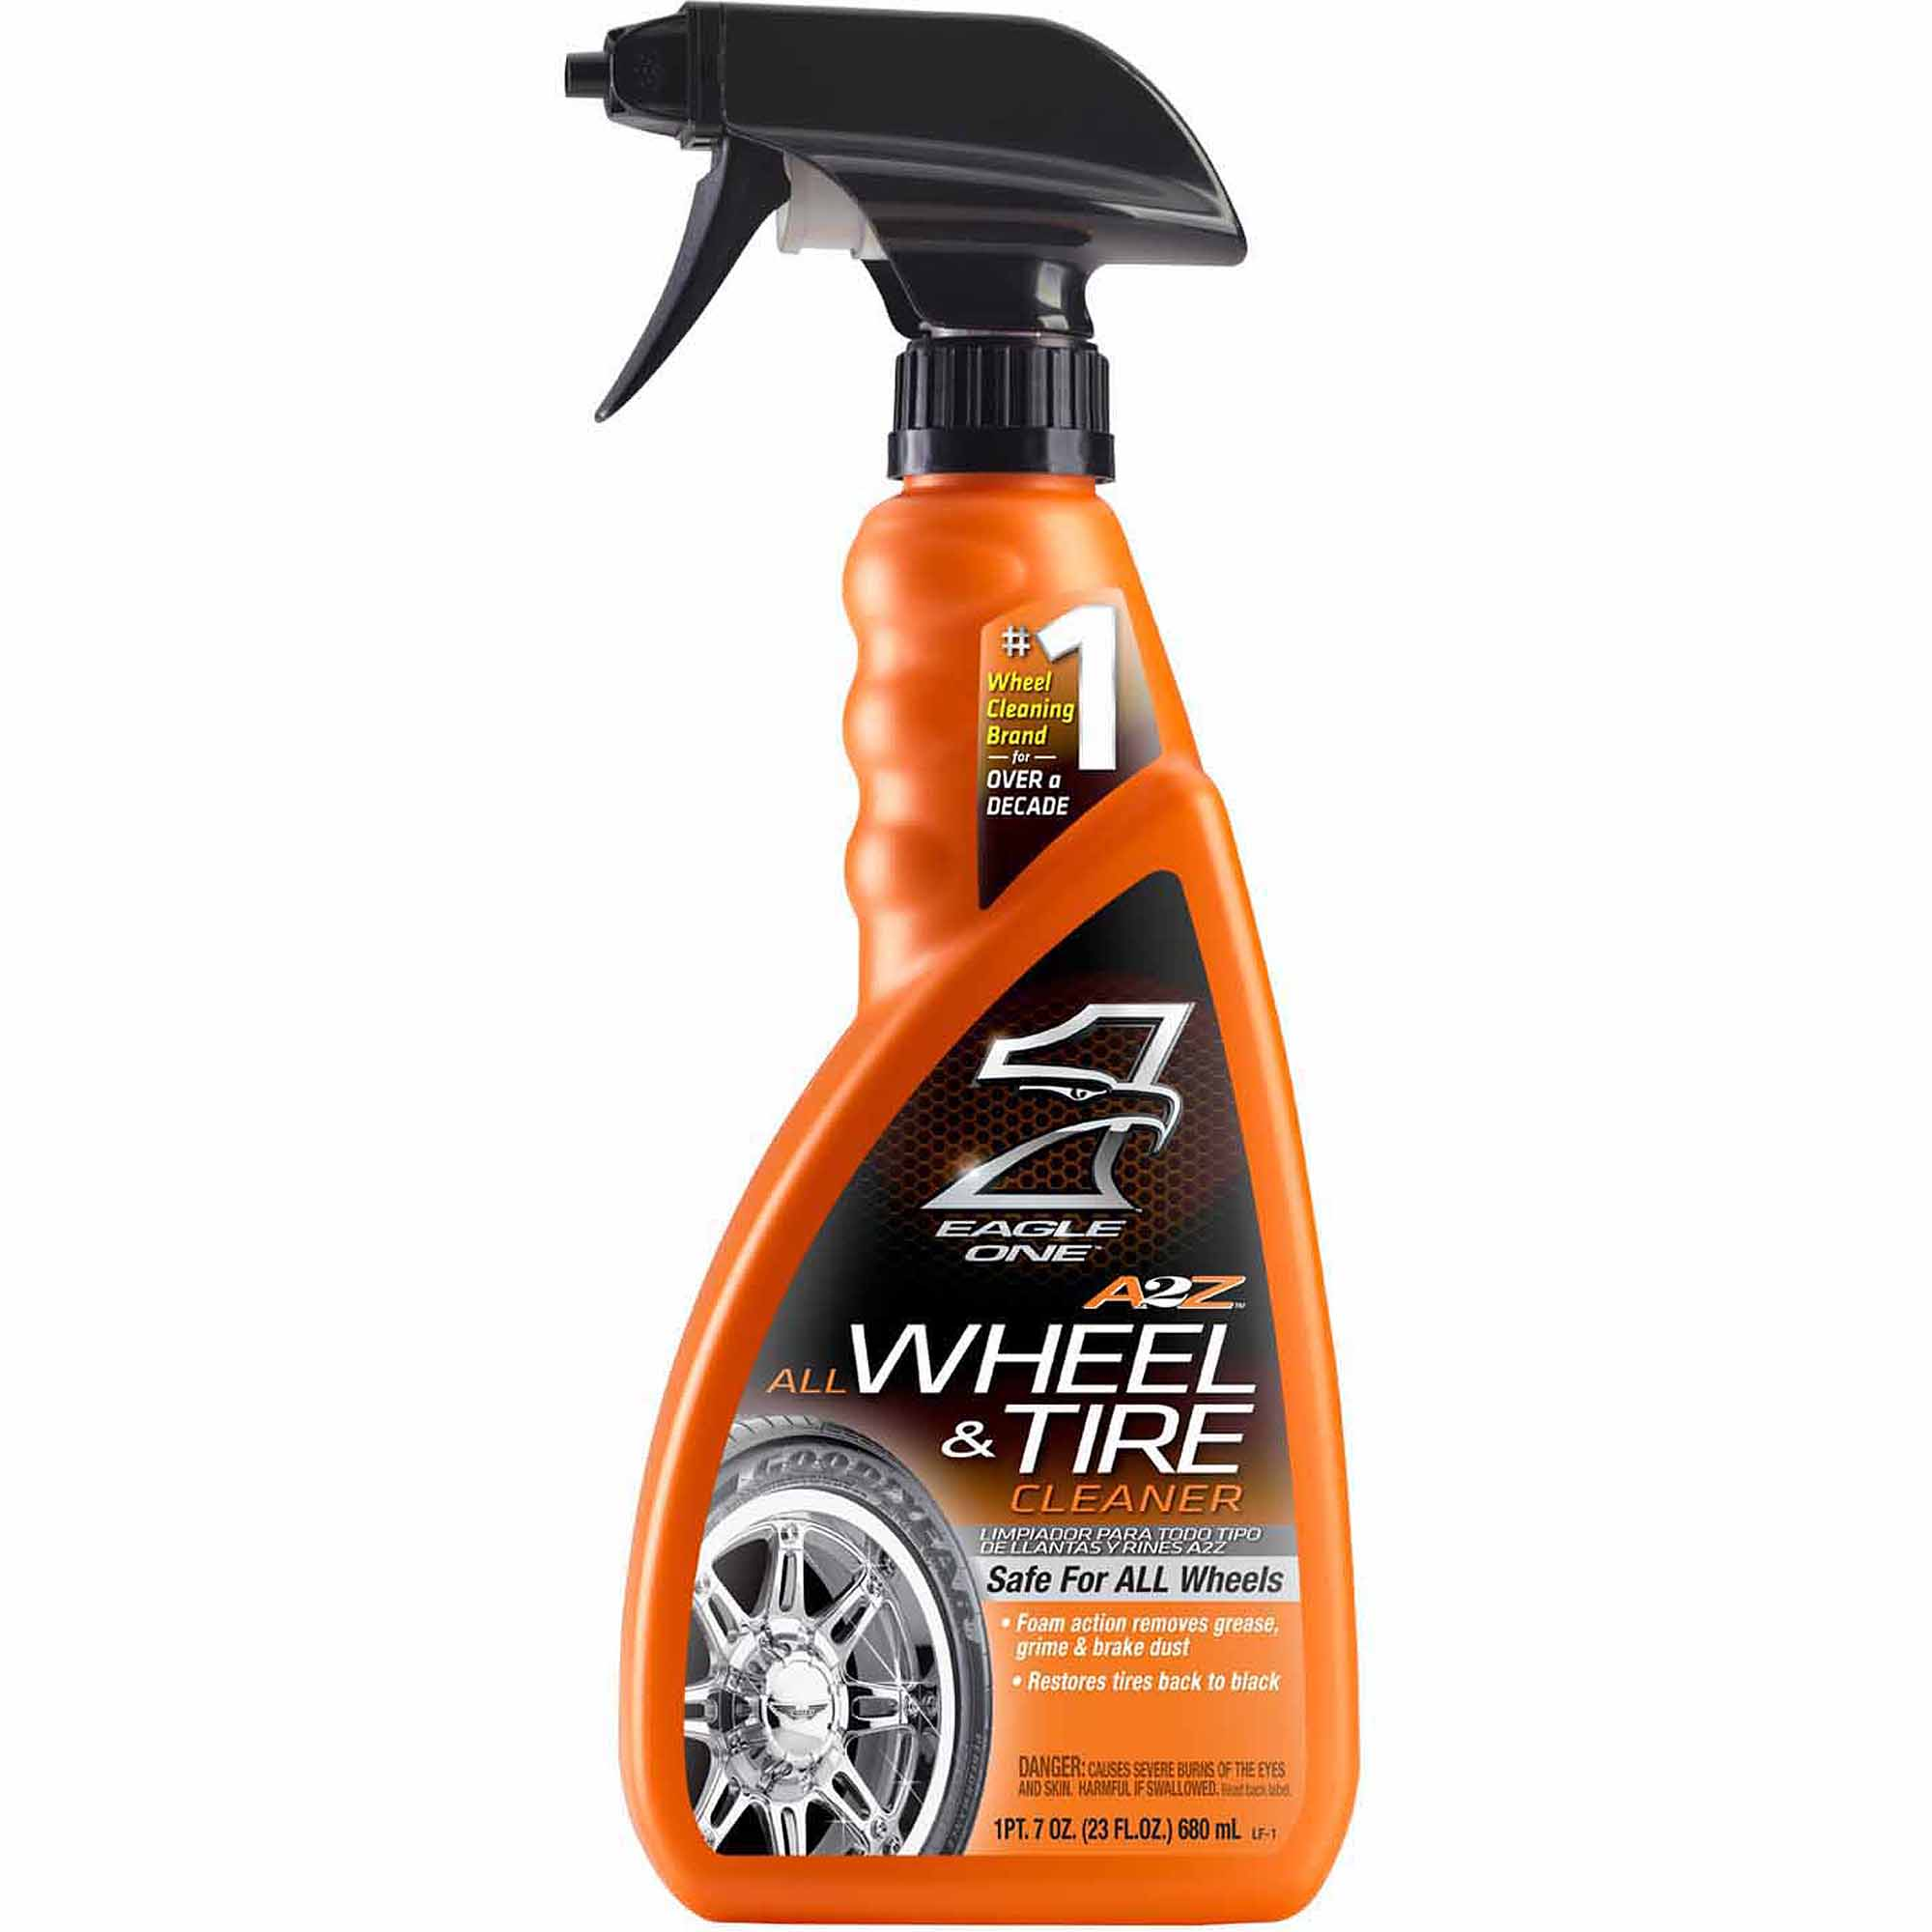 Eagle One All Wheel and Tire Cleaner